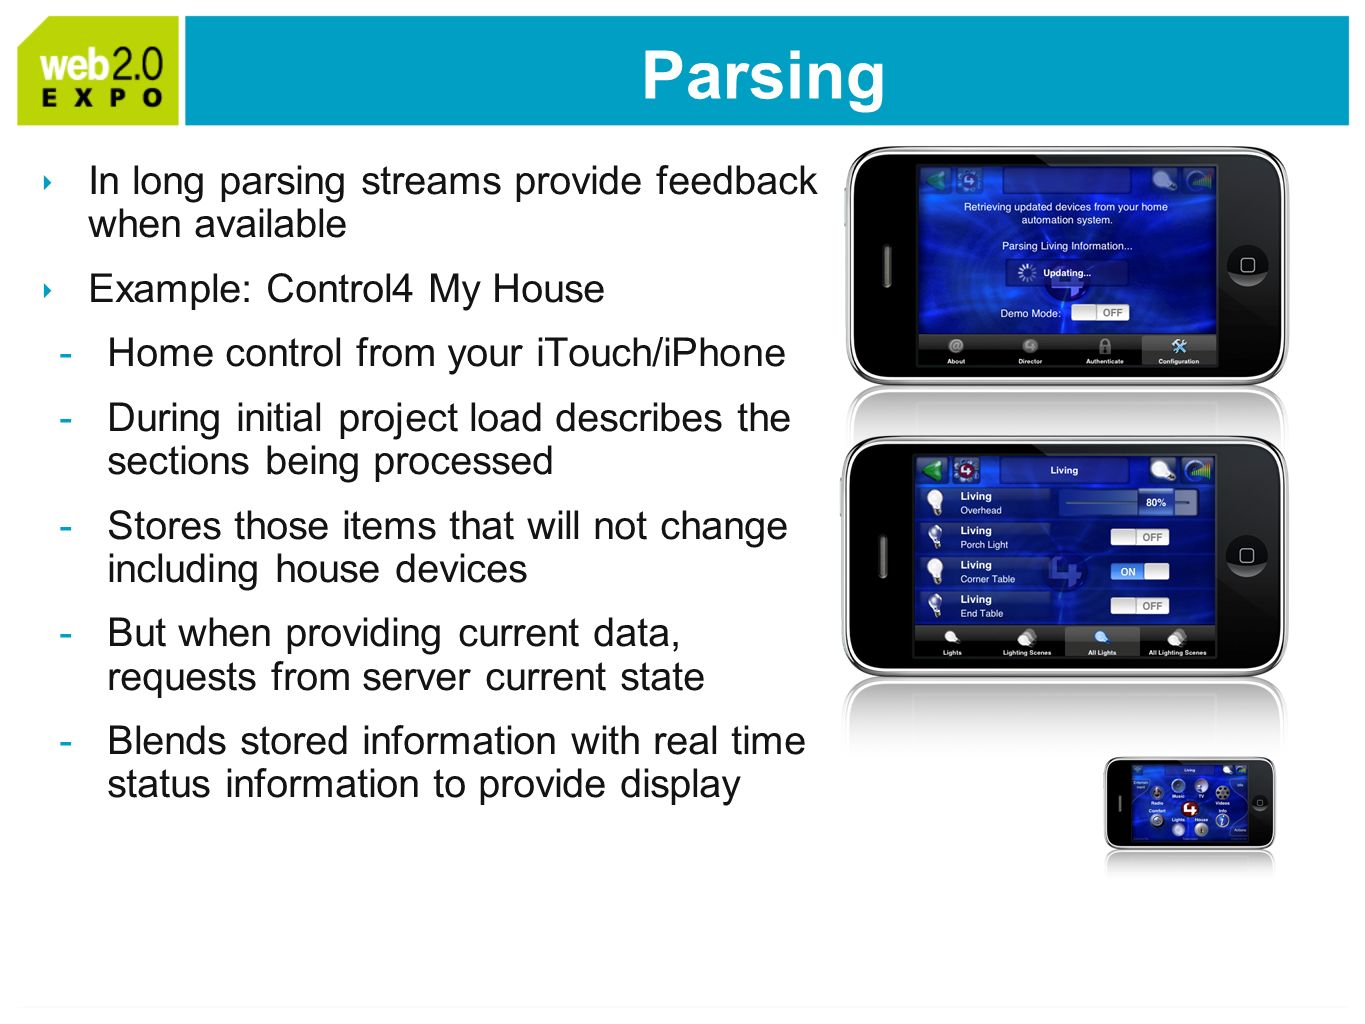 Parsing In long parsing streams provide feedback when available Example: Control4 My House -Home control from your iTouch/iPhone -During initial project load describes the sections being processed -Stores those items that will not change including house devices -But when providing current data, requests from server current state -Blends stored information with real time status information to provide display